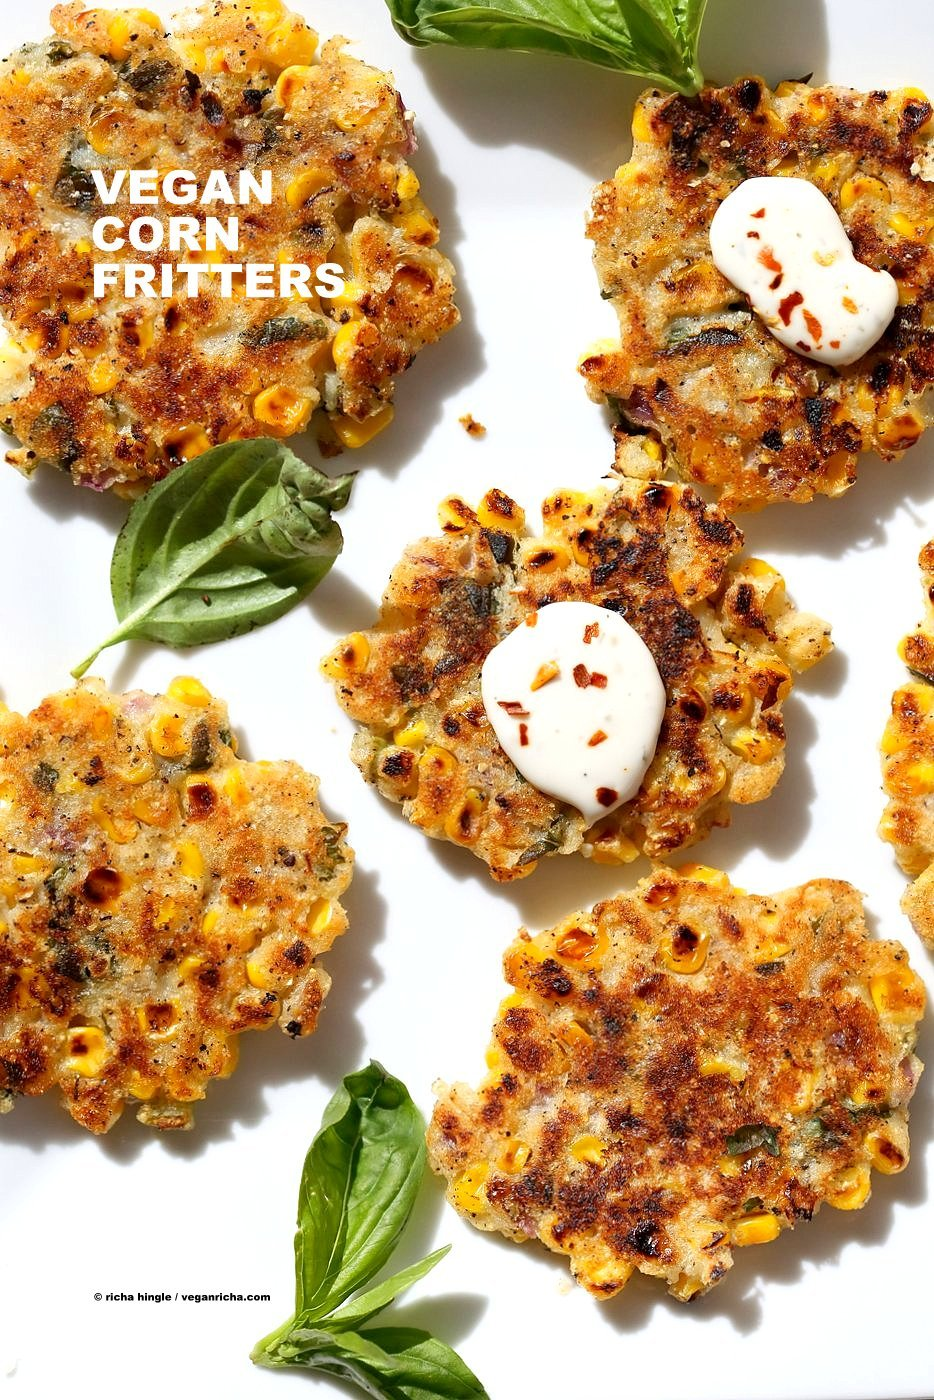 40 vegan party food recipes vegan richa easy gluten free vegan corn fritters with jalapeno basil forumfinder Choice Image